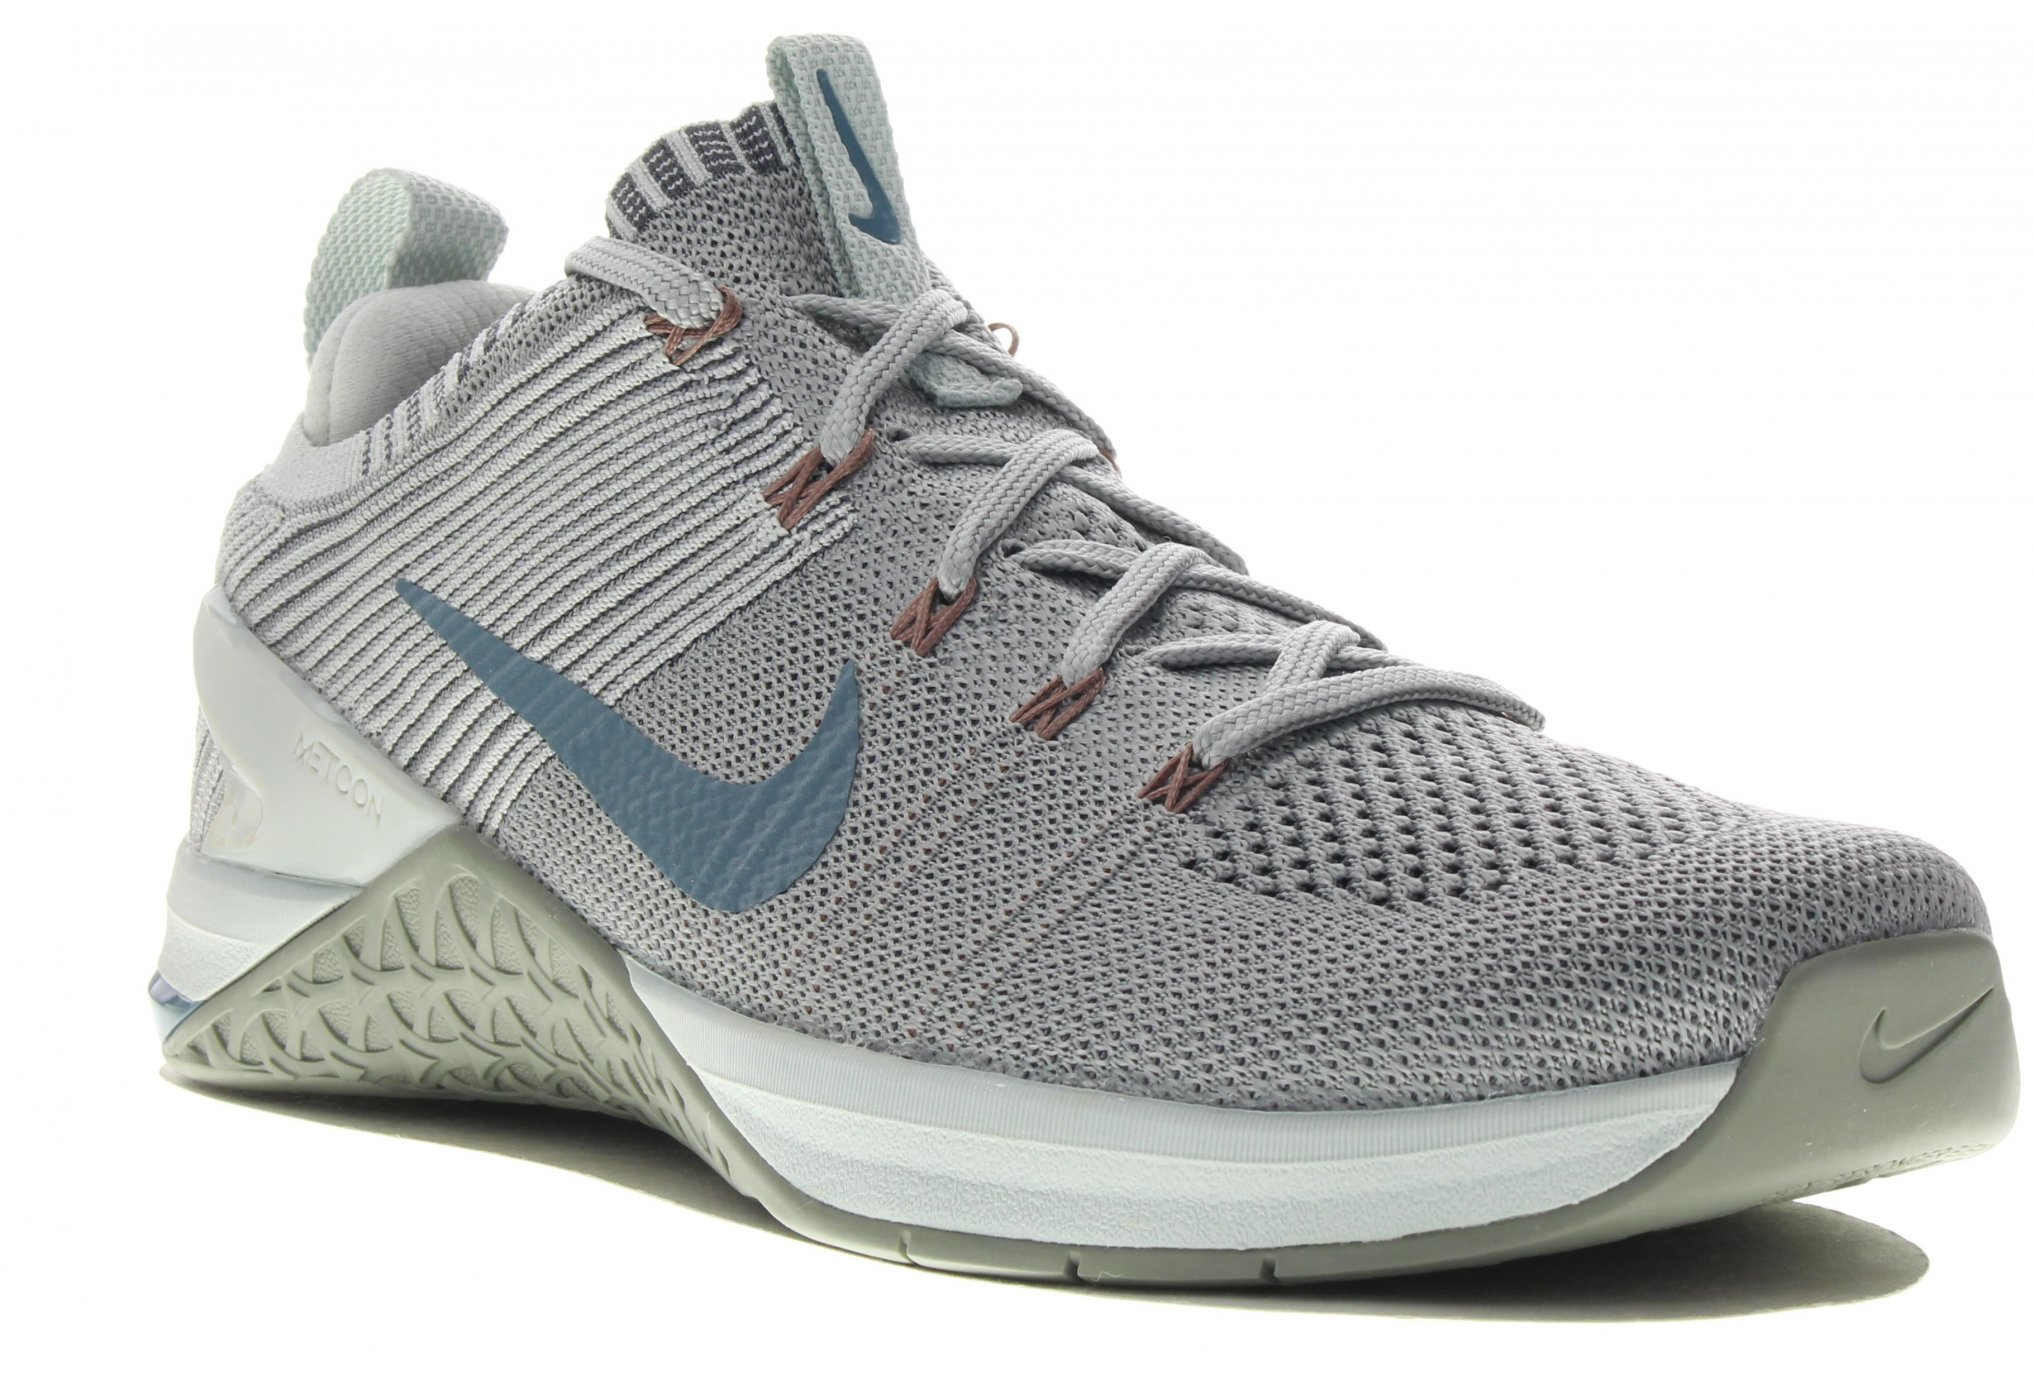 Nike Metcon DSX Flyknit 2 W Chaussures running femme